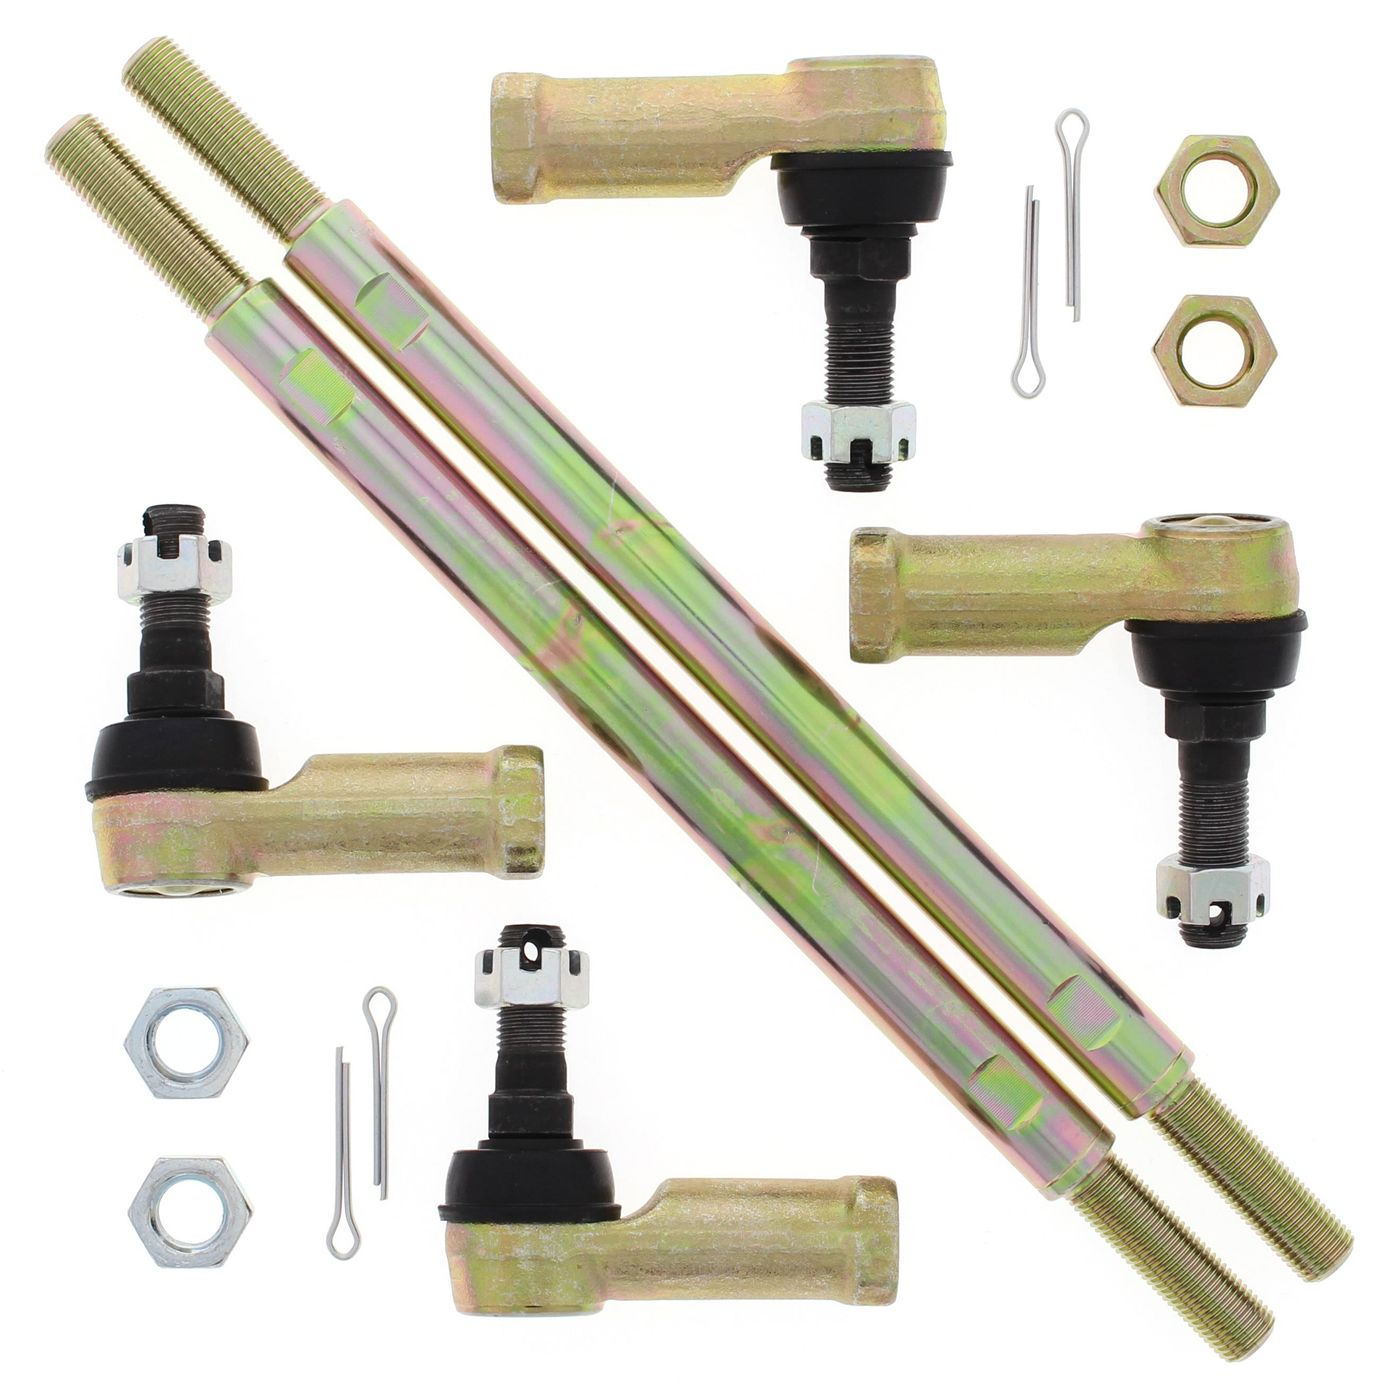 Wrp Tie Rod Kits - WRP521024 image